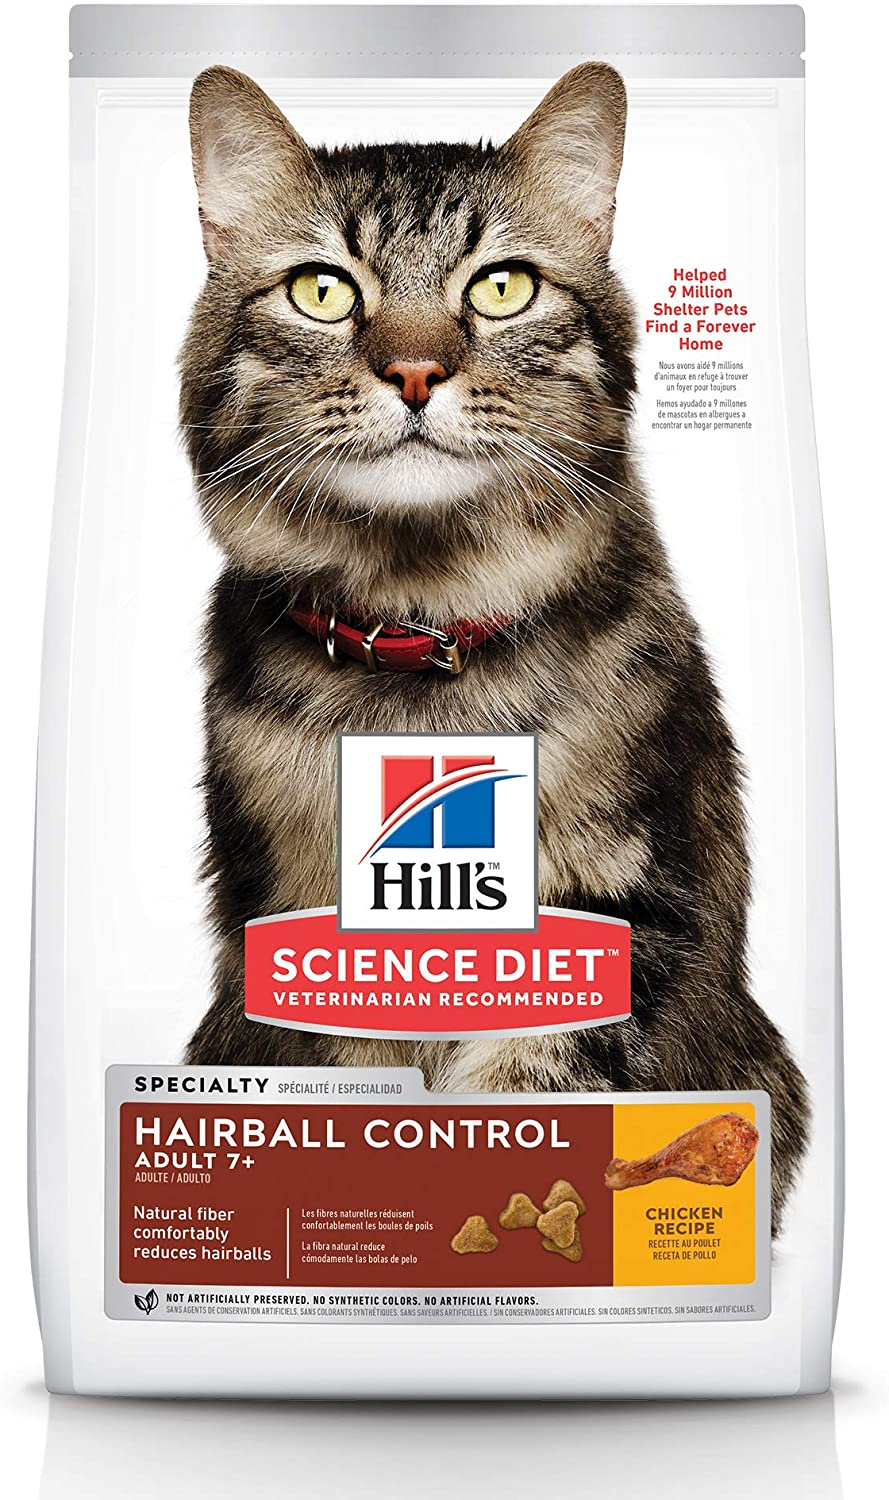 Hill's Science Diet Dry Cat Food, Adult 7+ for Senior Cats, Hairball Control, Chicken Recipe